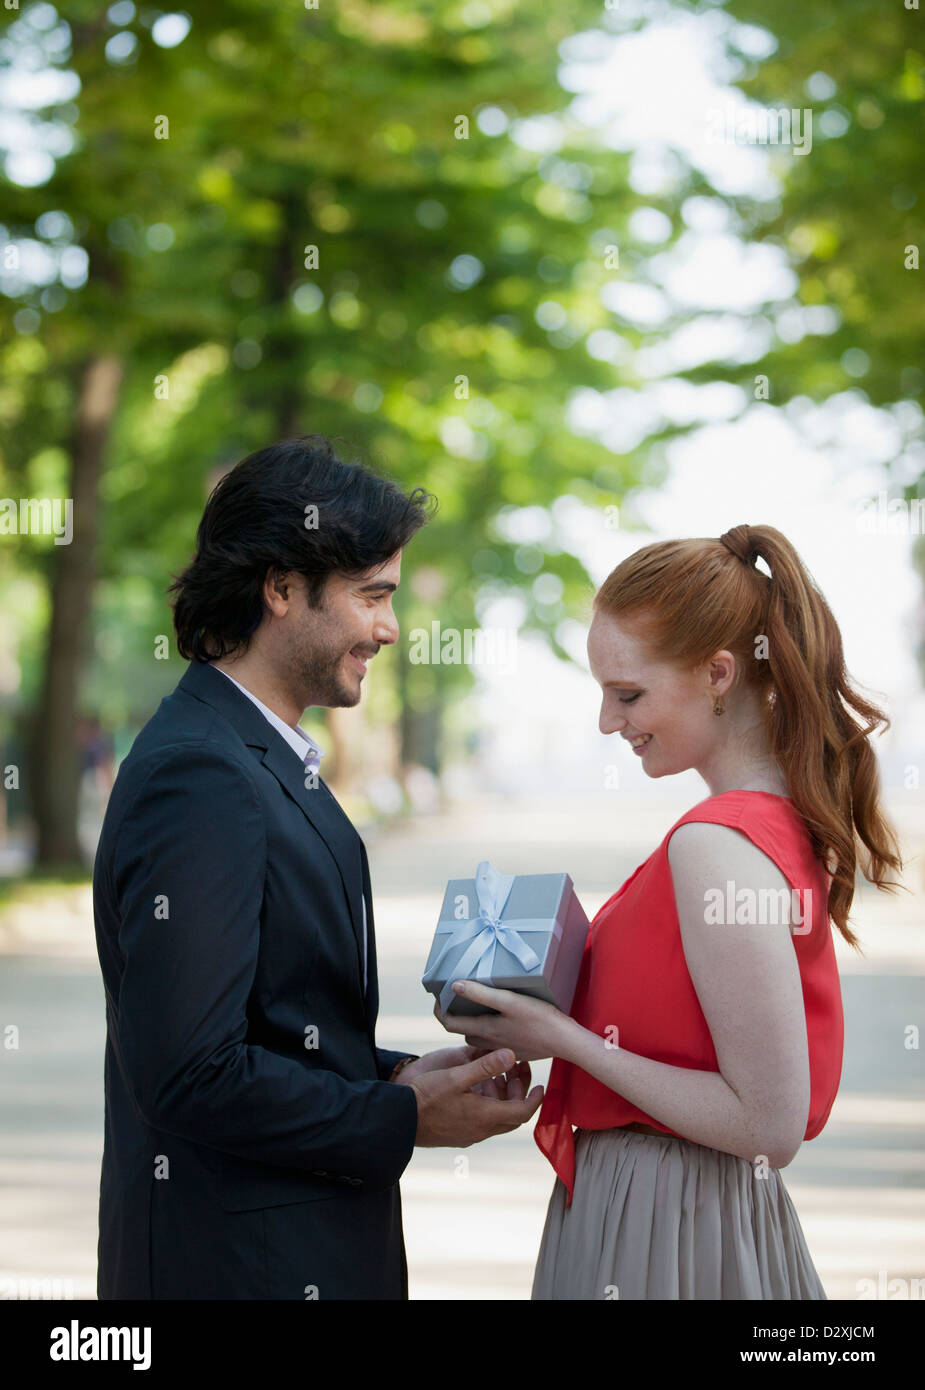 Man giving woman gift in park - Stock Image